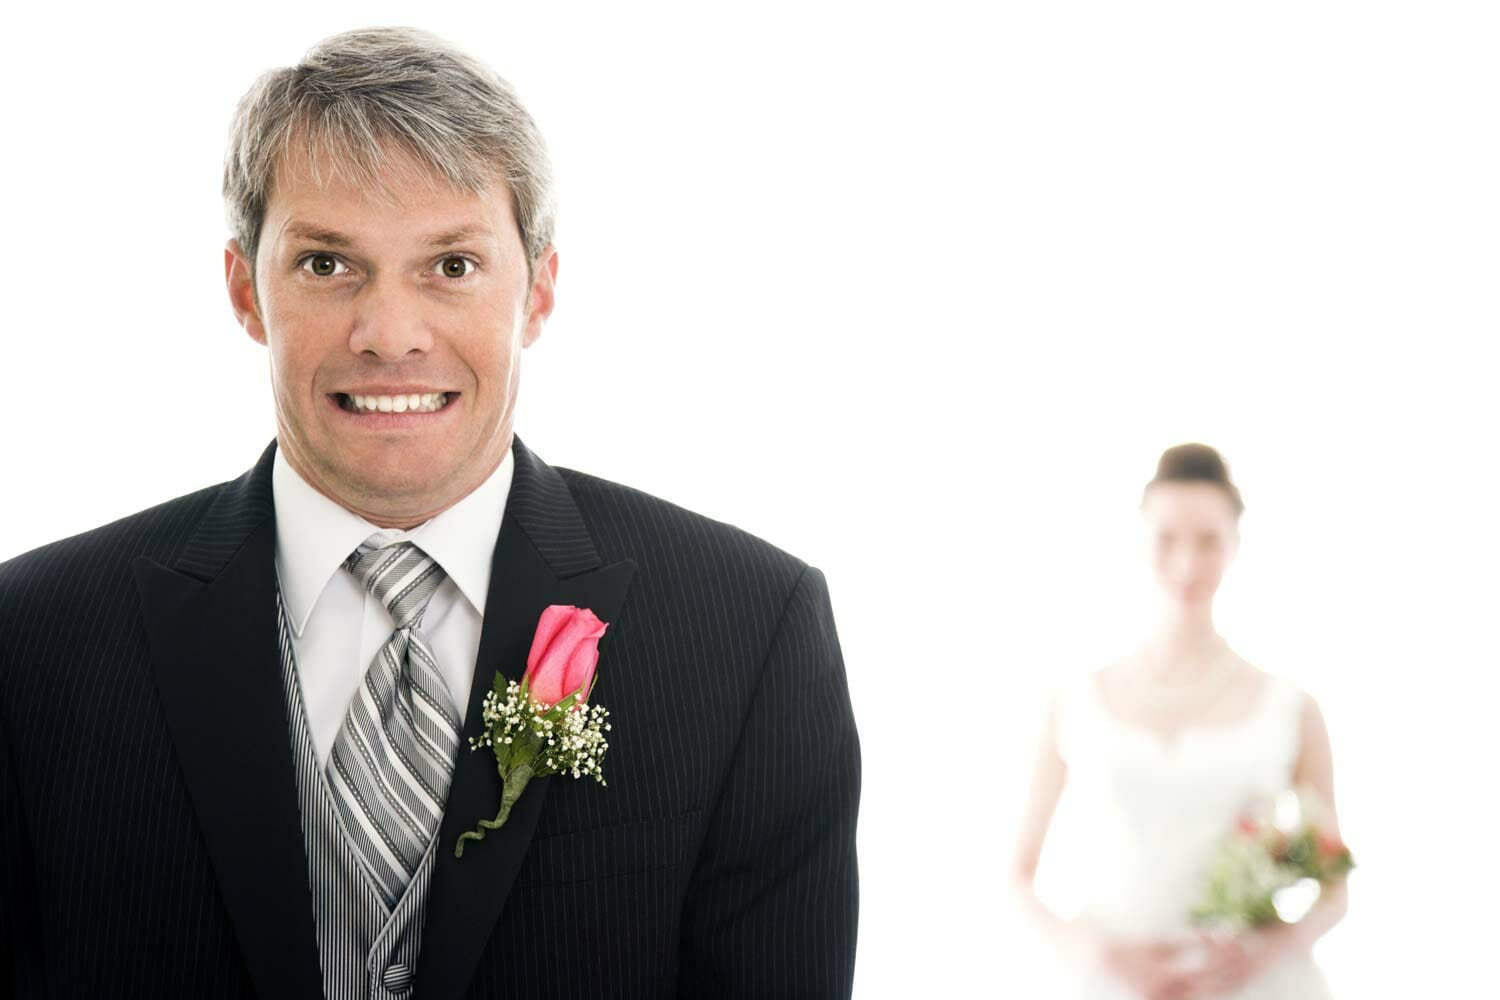 heterosexual marriage While there are many similarities between gay and straight marriages, a decade  of social science research shows that same-sex couples have.